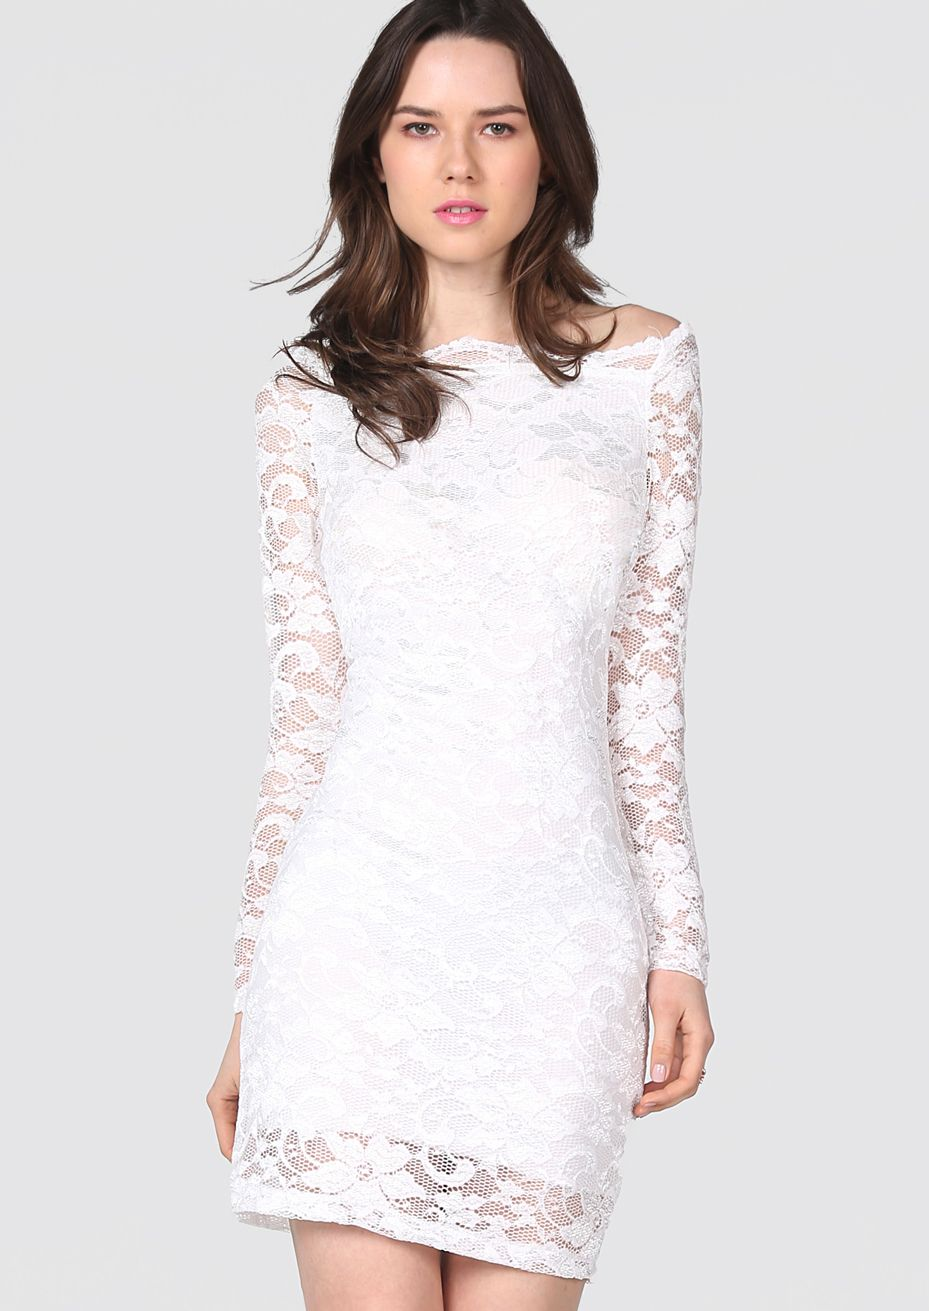 26 white boat neck long sleeve embroidery lace dress us